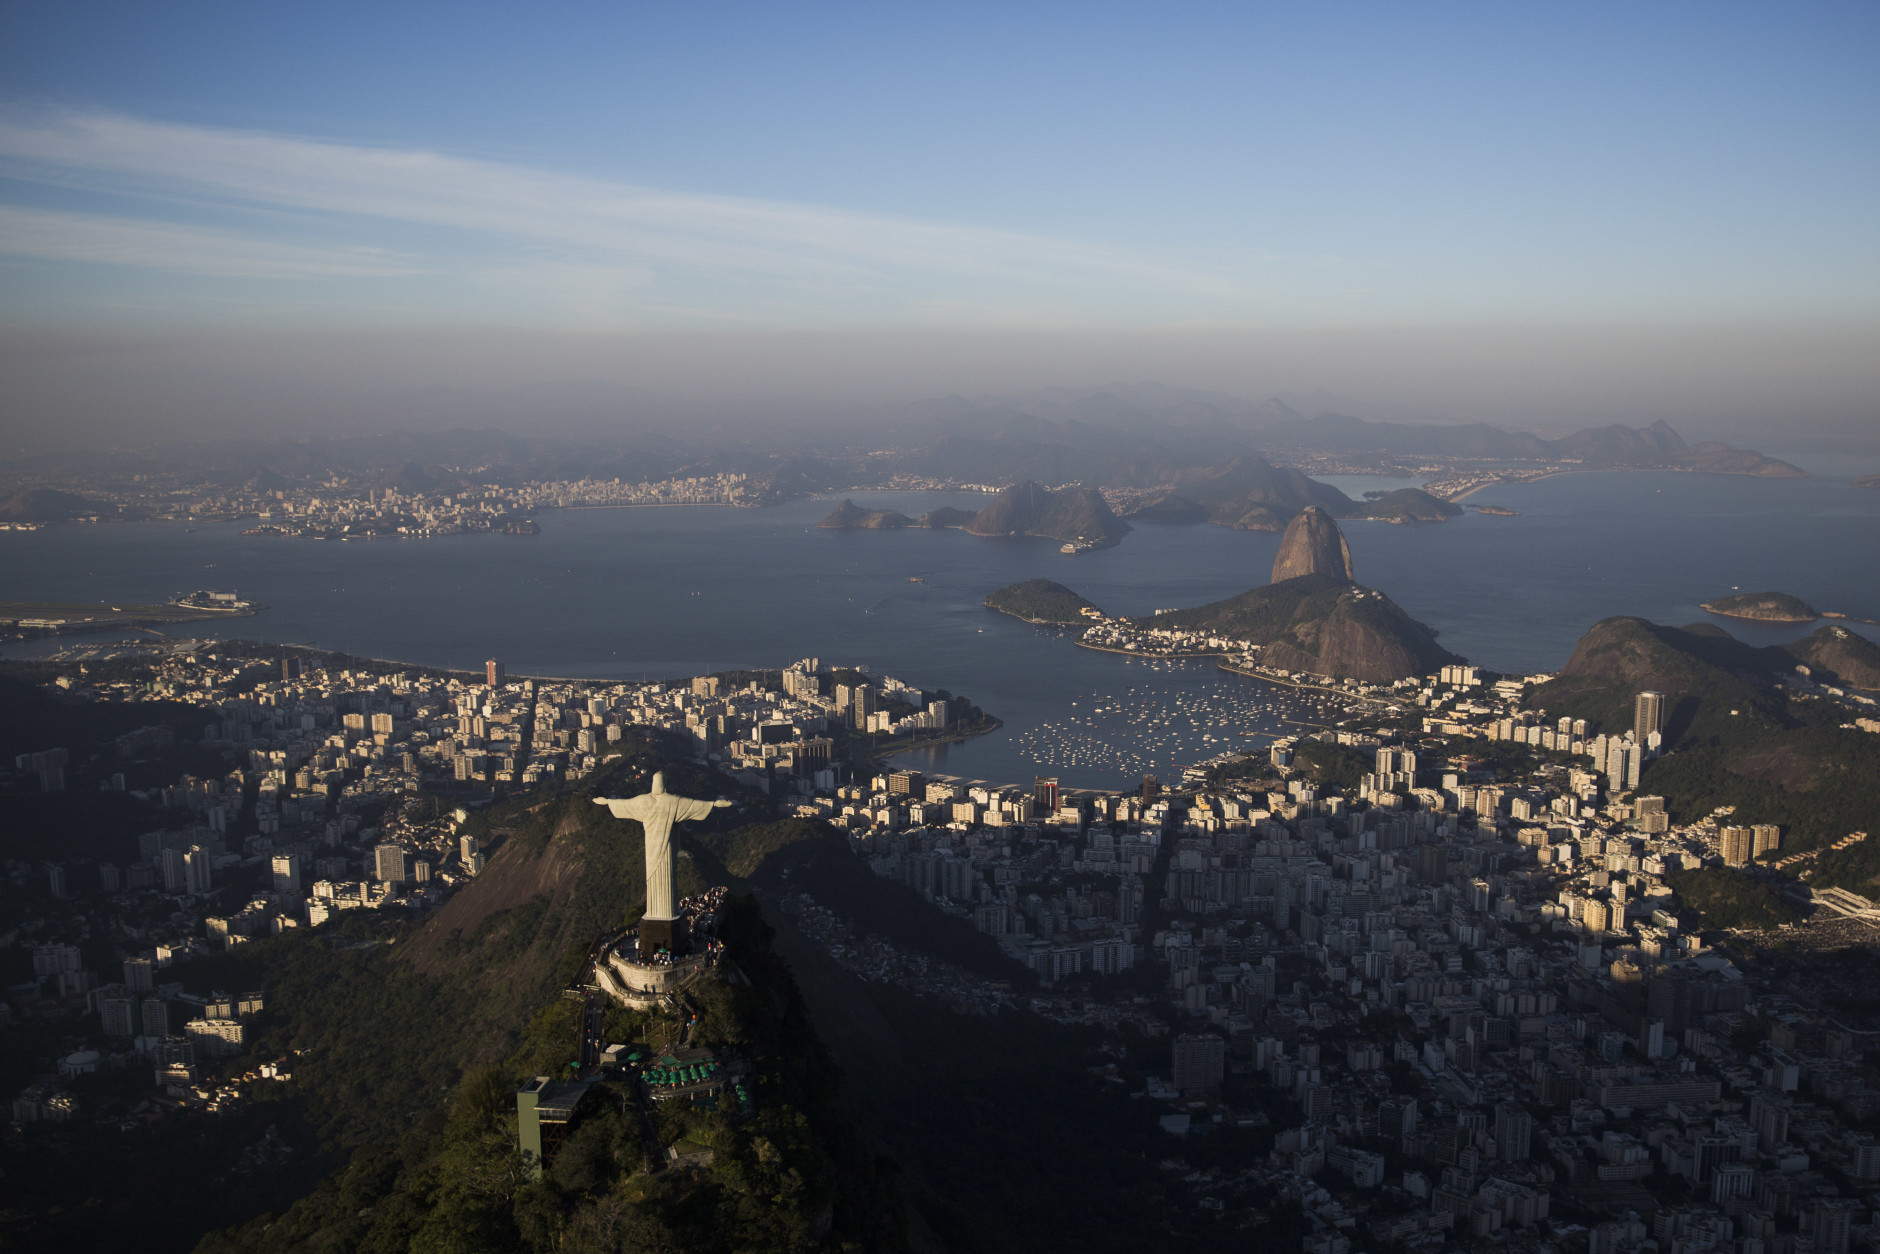 The Sugar loaf and Guanabara bay are seen behind the Christ the Redeemer statue in Rio de Janeiro, Brazil, Monday, July 4, 2016. With the Olympics set to start on Aug. 5, the games and the city have been overshadowed by security threats, violence, the Zika virus and a national political corruption scandal. (AP Photo/Felipe Dana)